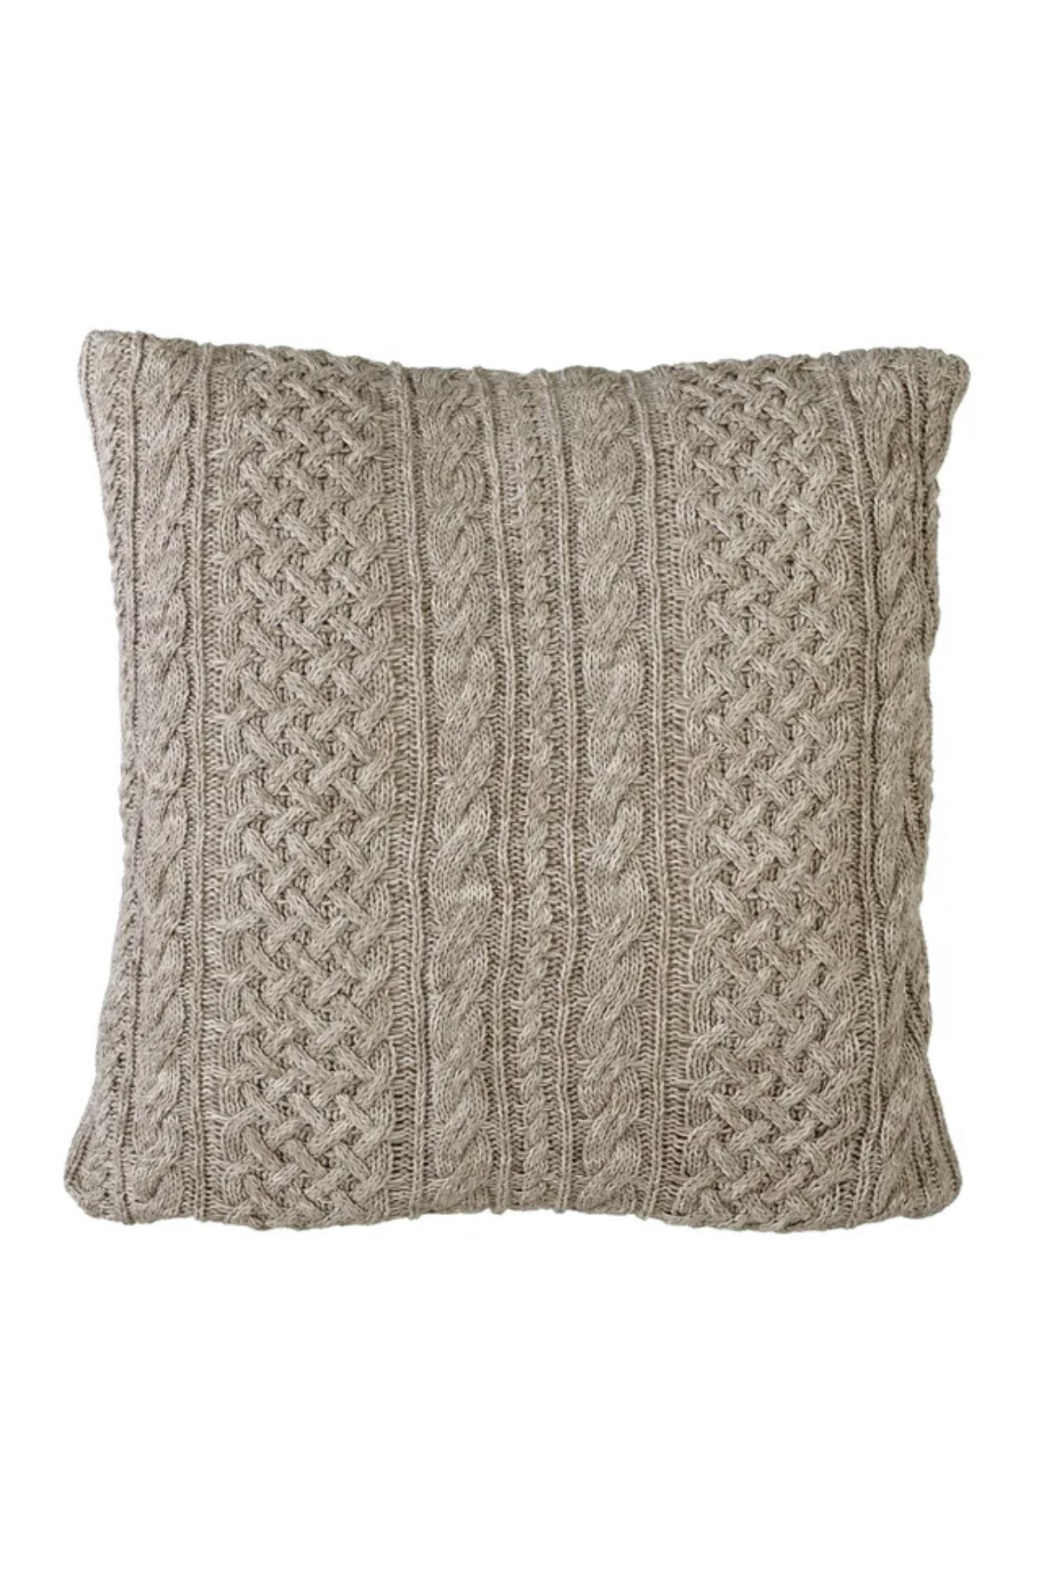 The Birch Tree Cable Knit Floor Pillow - Main Image